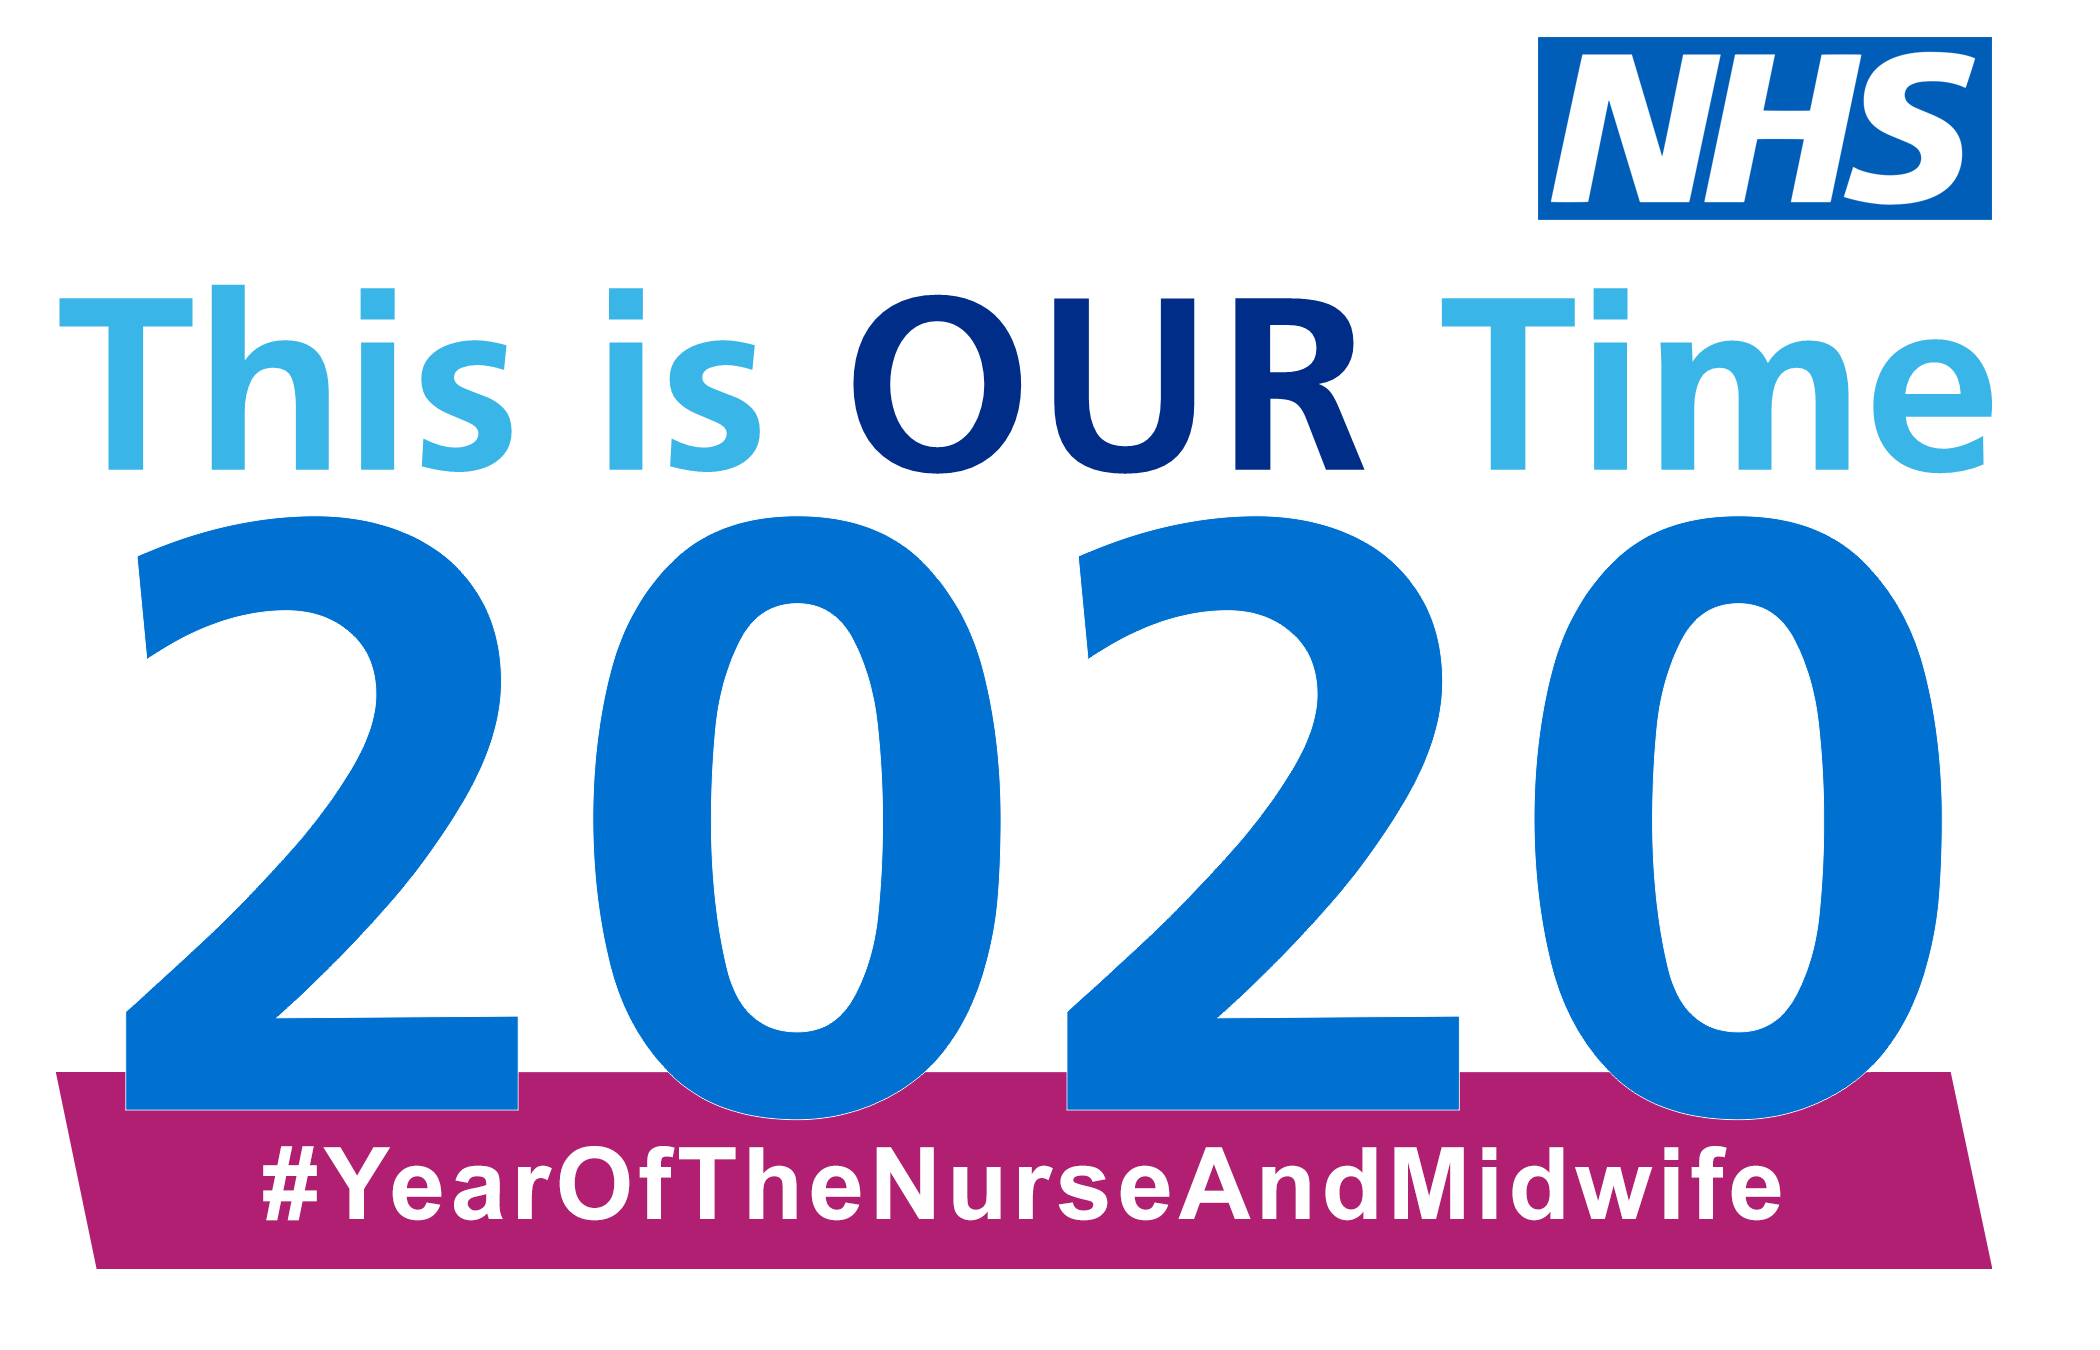 YNM2020-logo-NHS-transparent-background.png